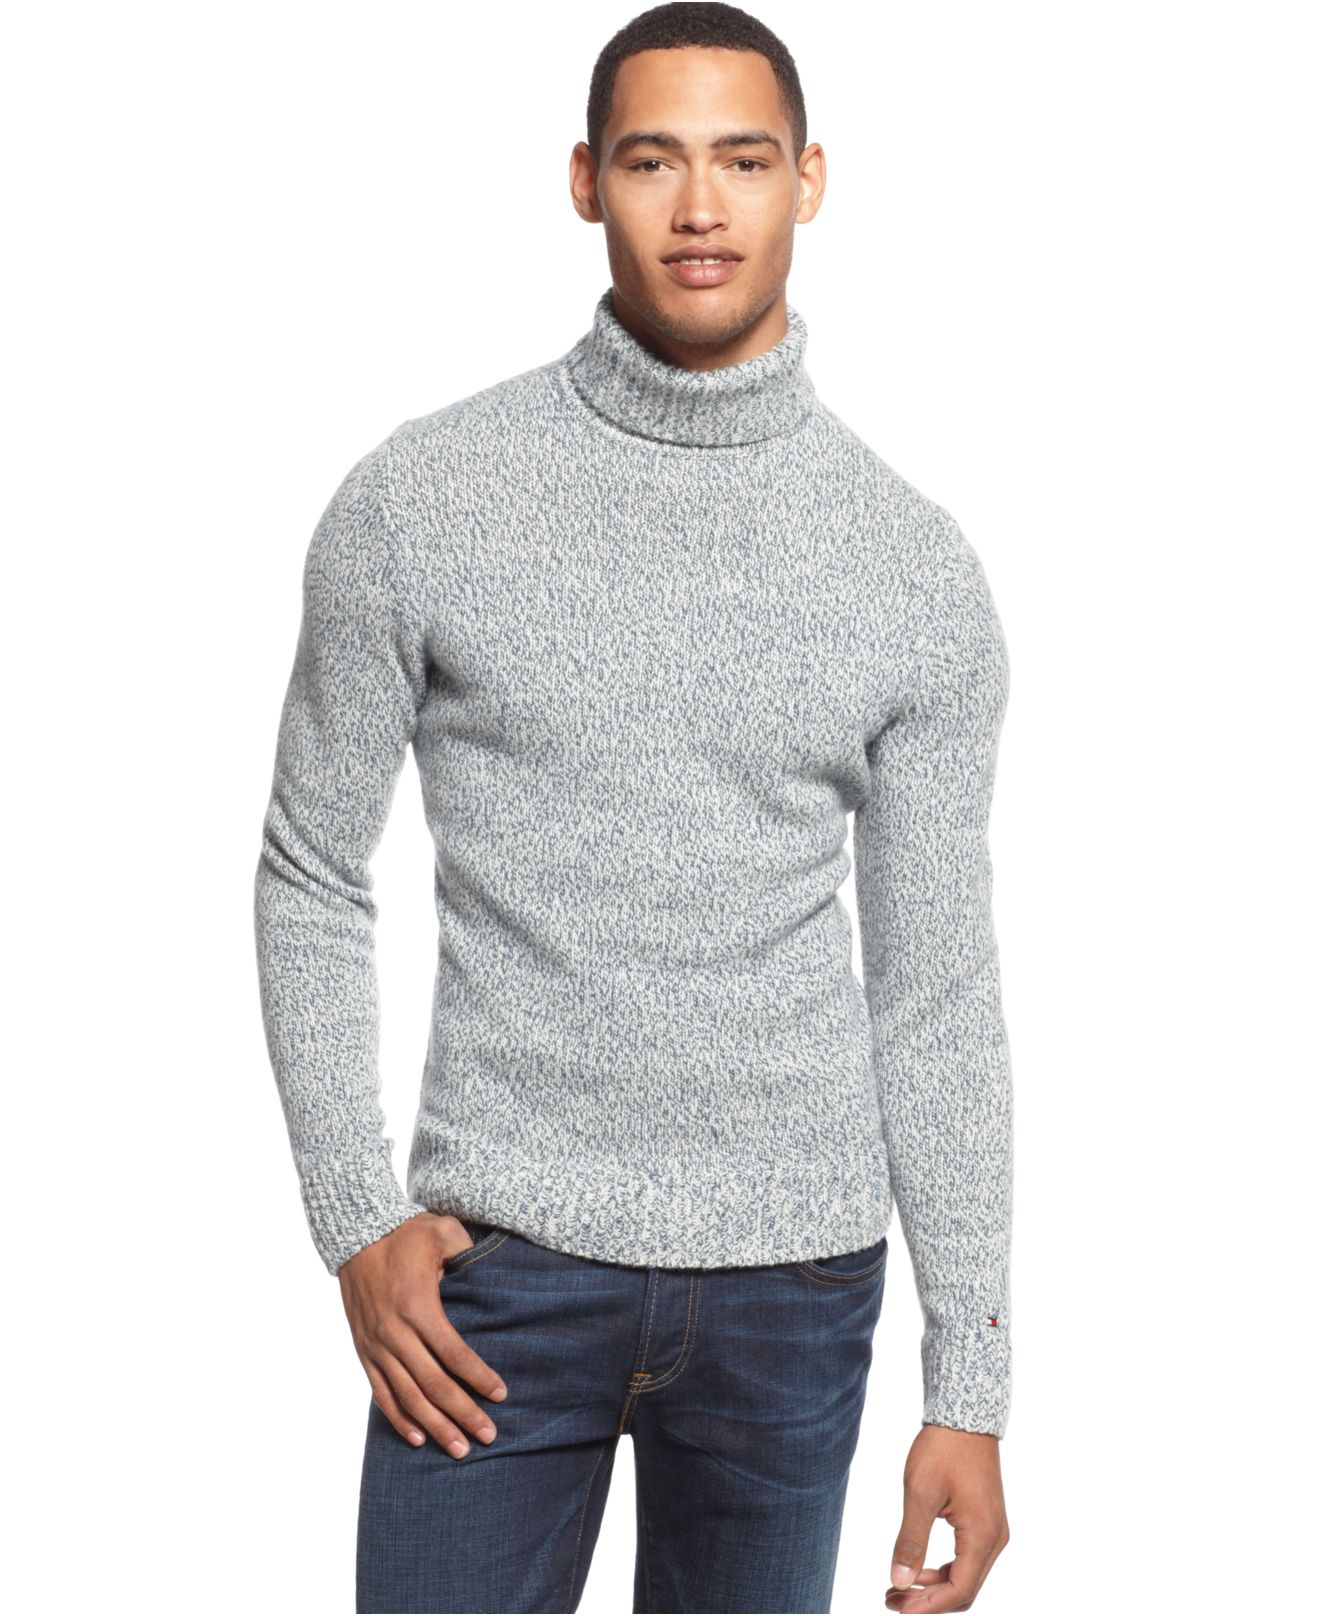 5bc70be33 Tommy Hilfiger Irving Marled Turtleneck Sweater in Gray for Men - Lyst